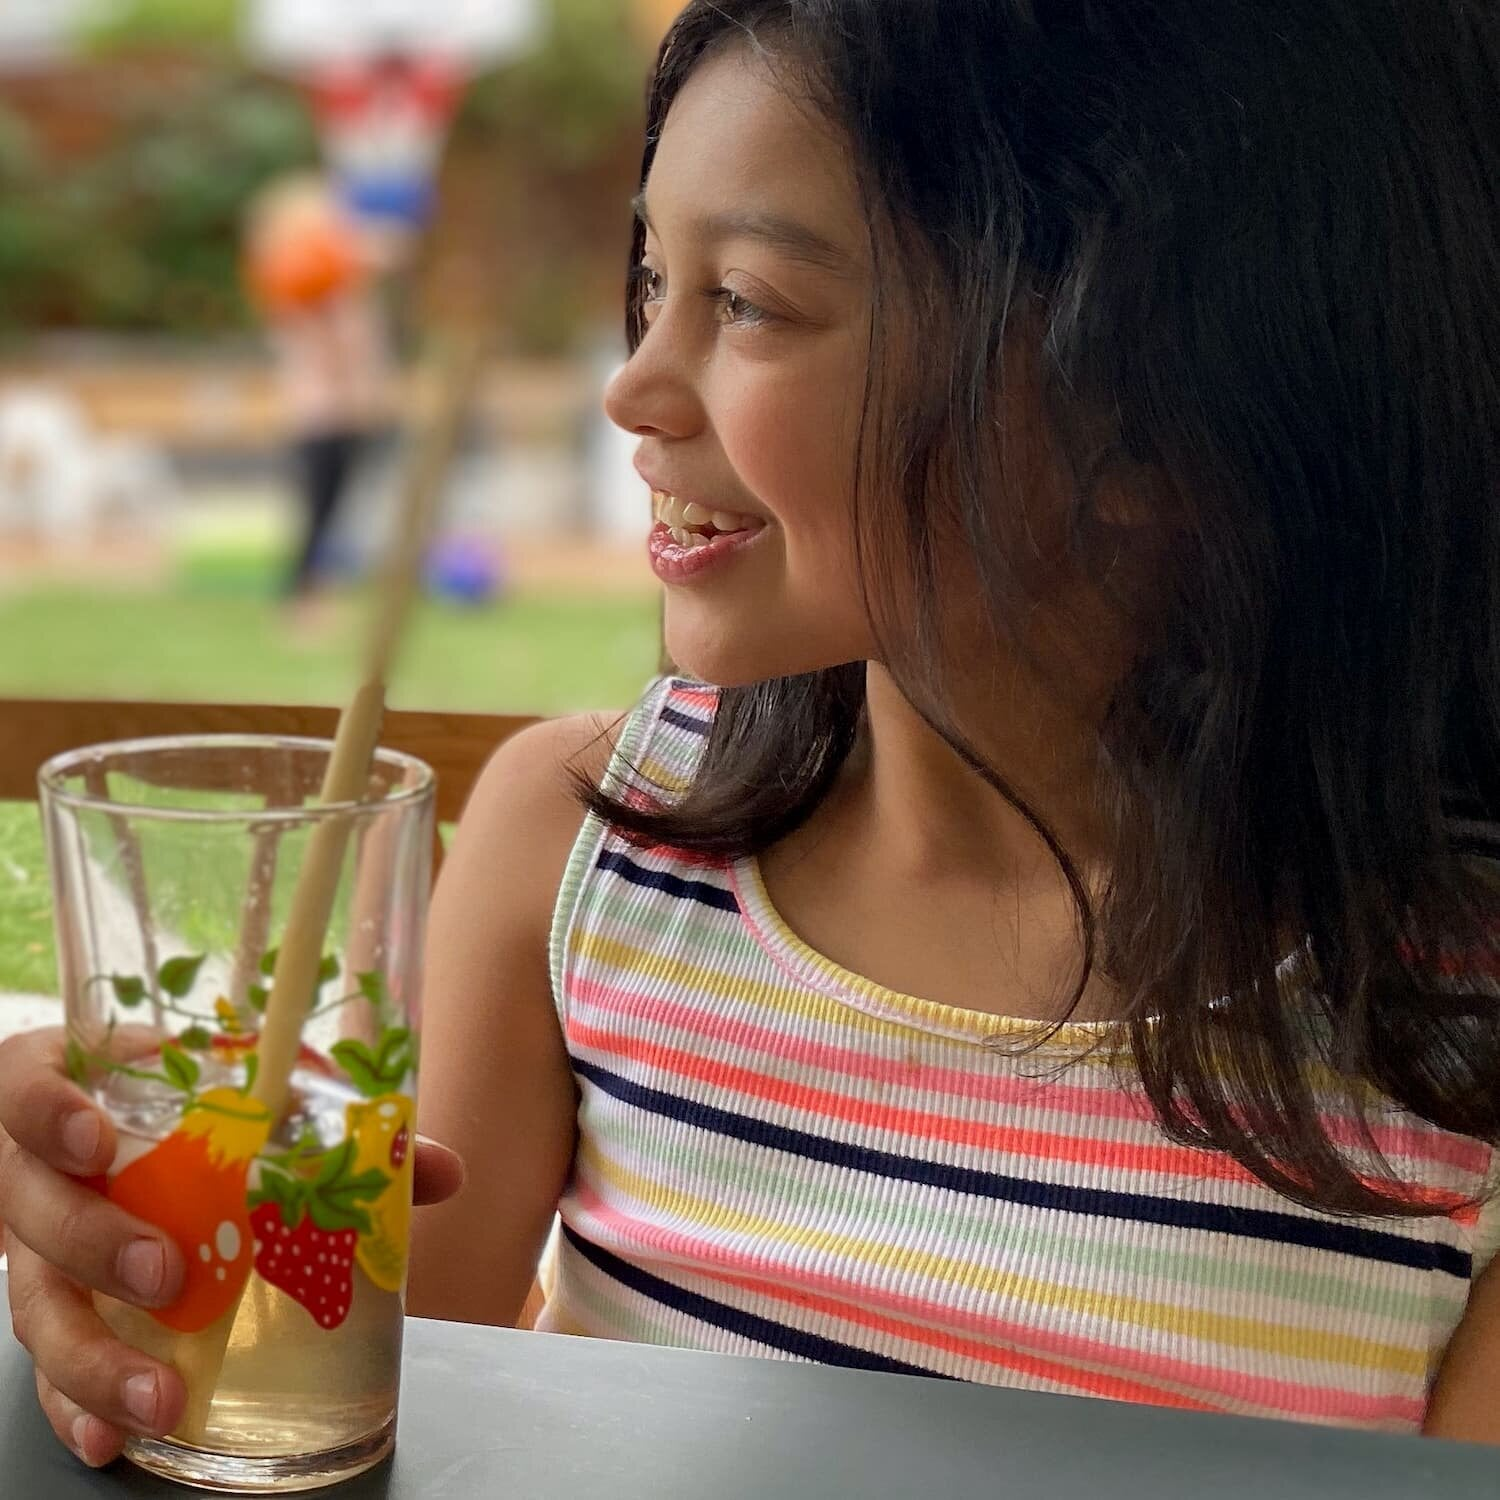 girl drinking iced tea from glass with straw